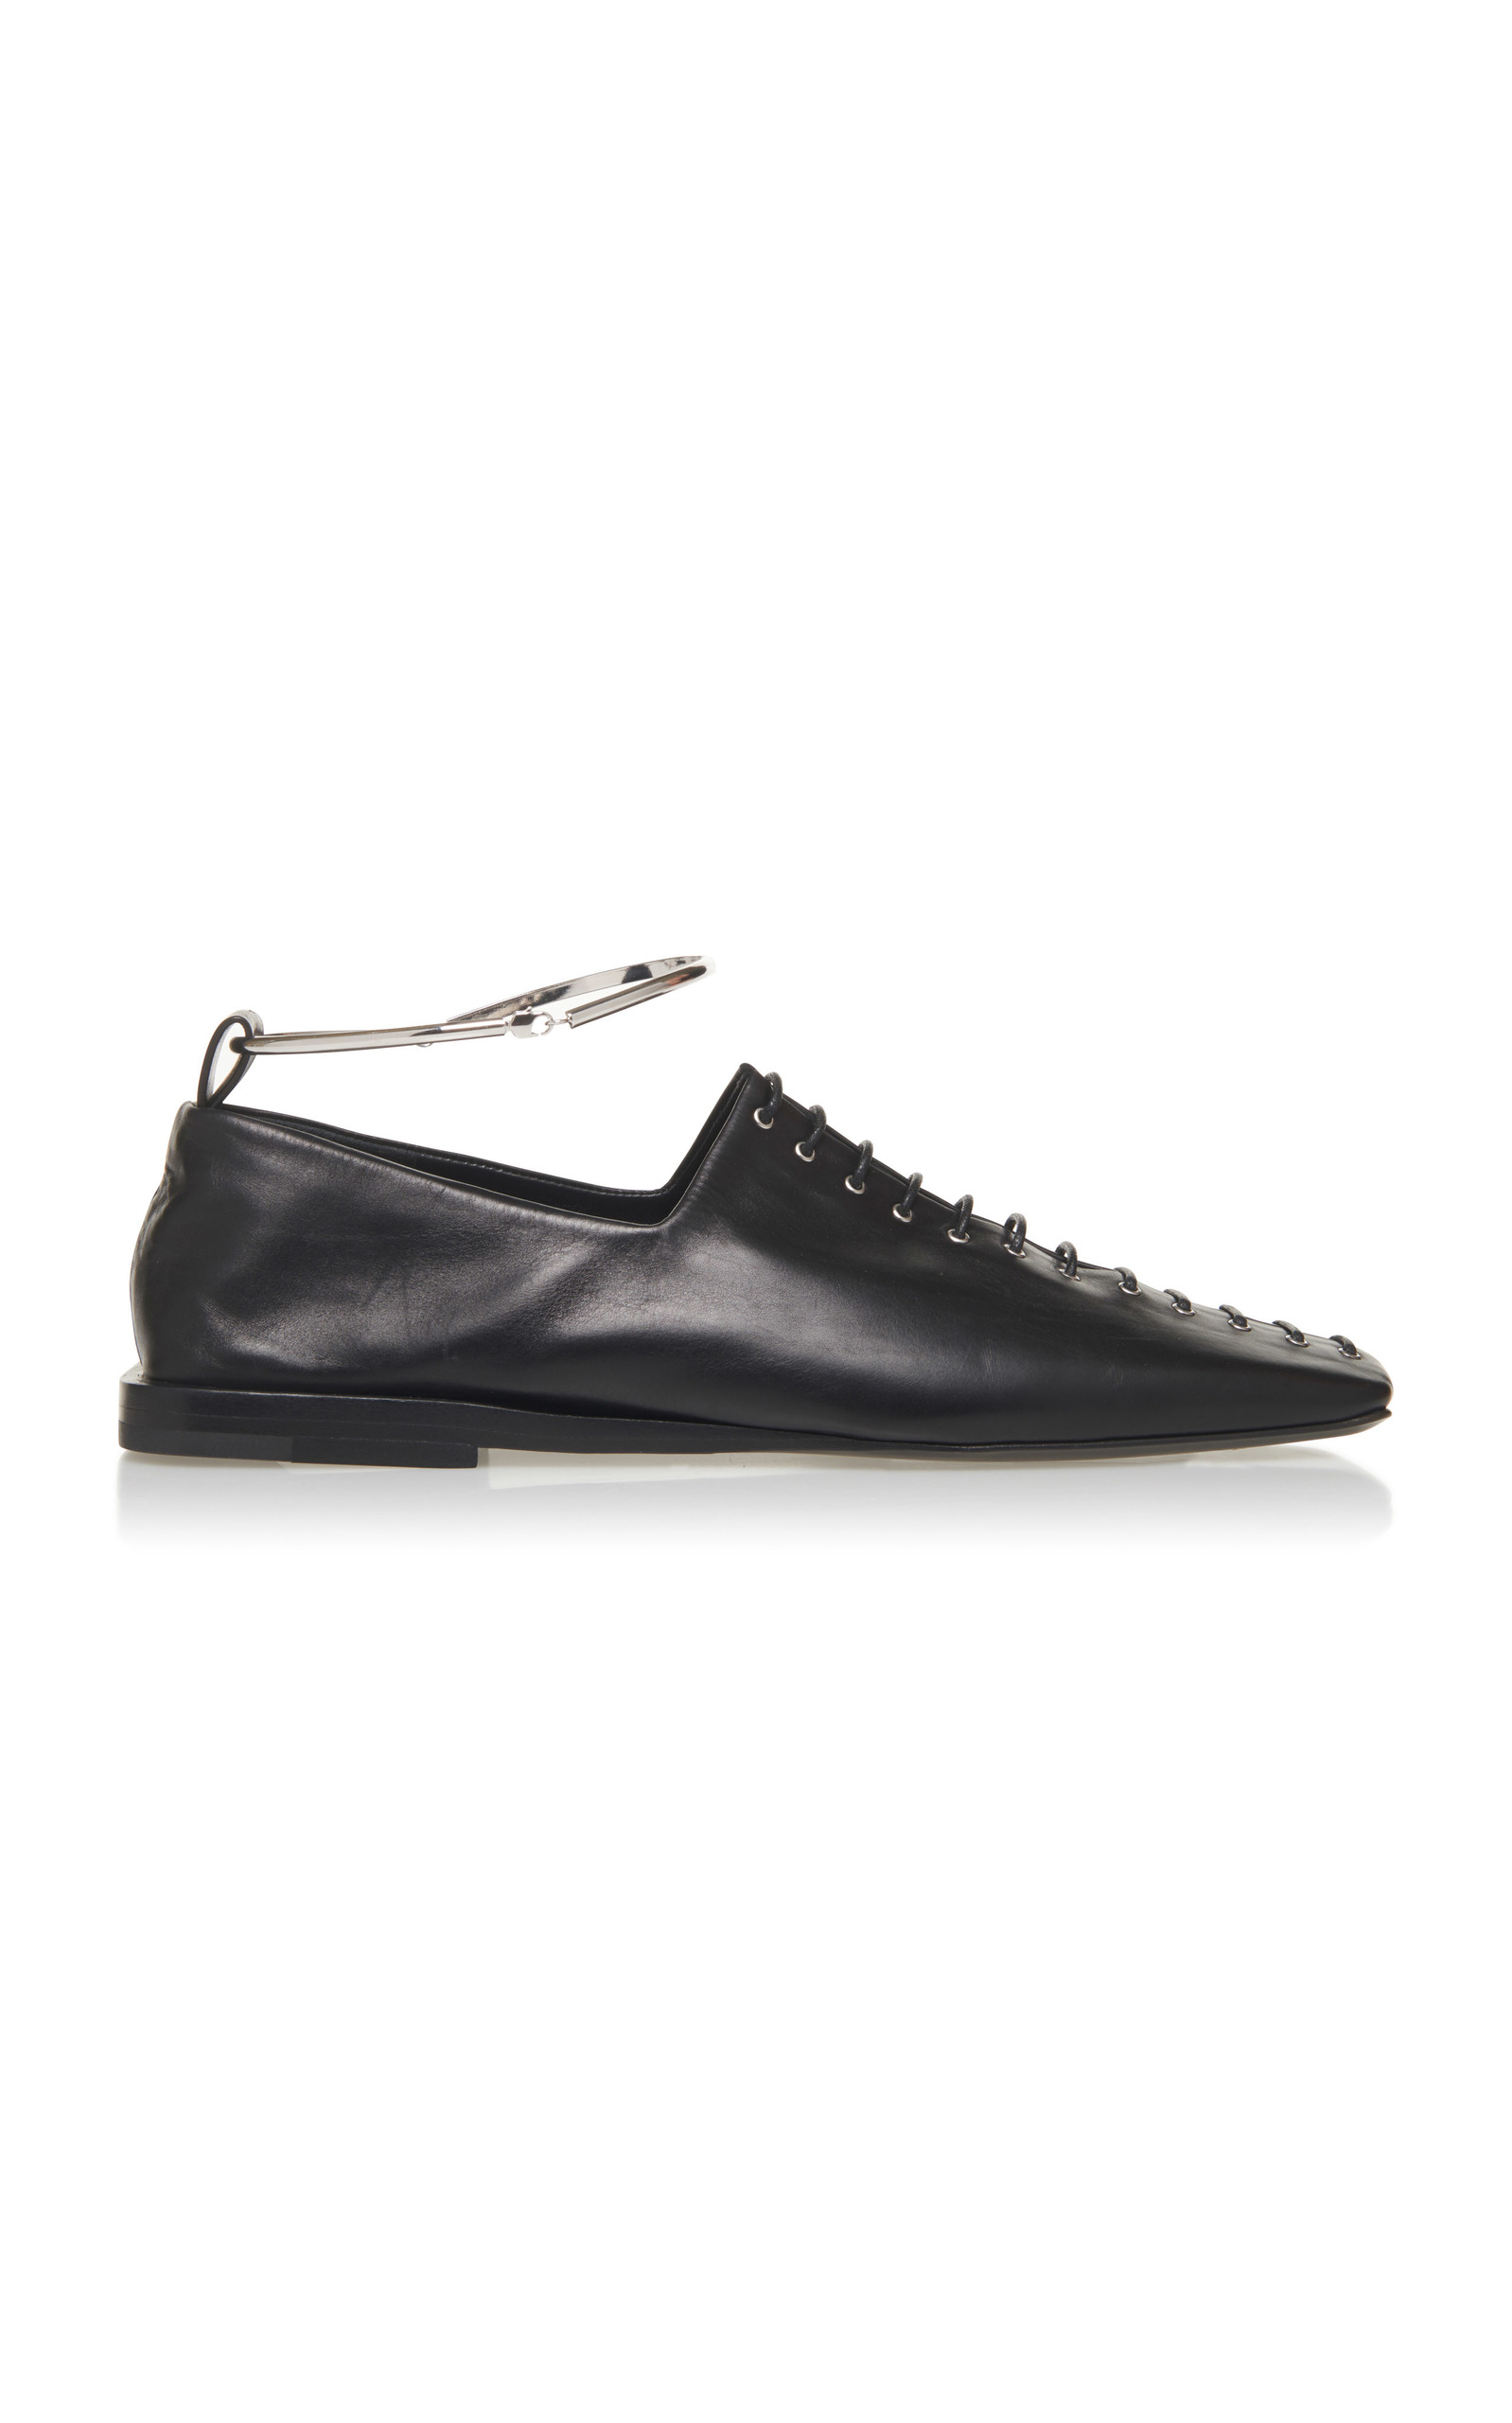 Jil Sander Lace up